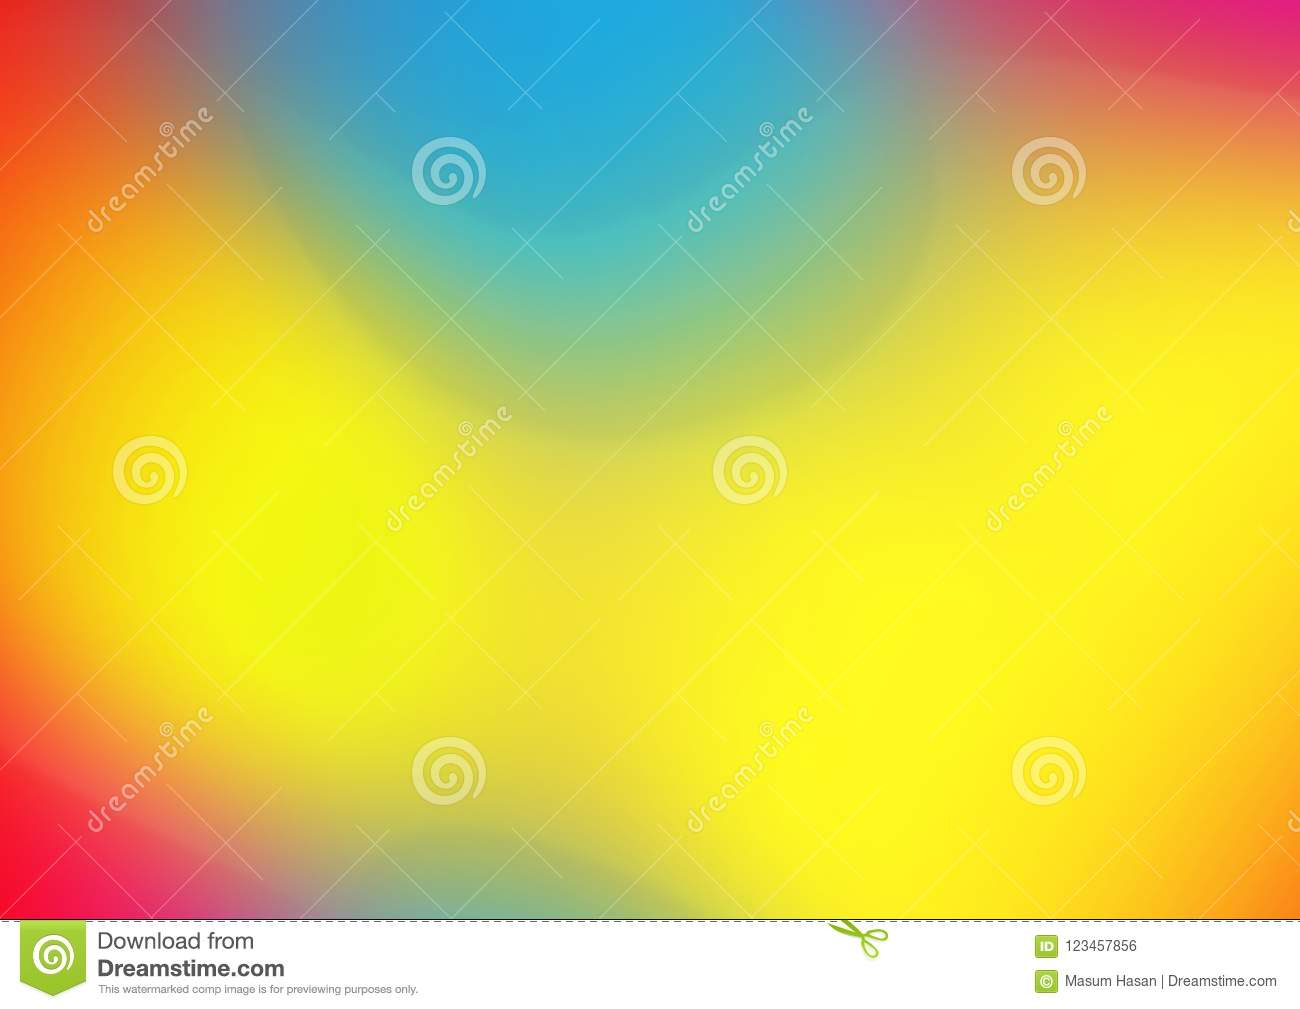 Red orange yellow blue bright gradient colorful horizontal banner watercolor texture background.